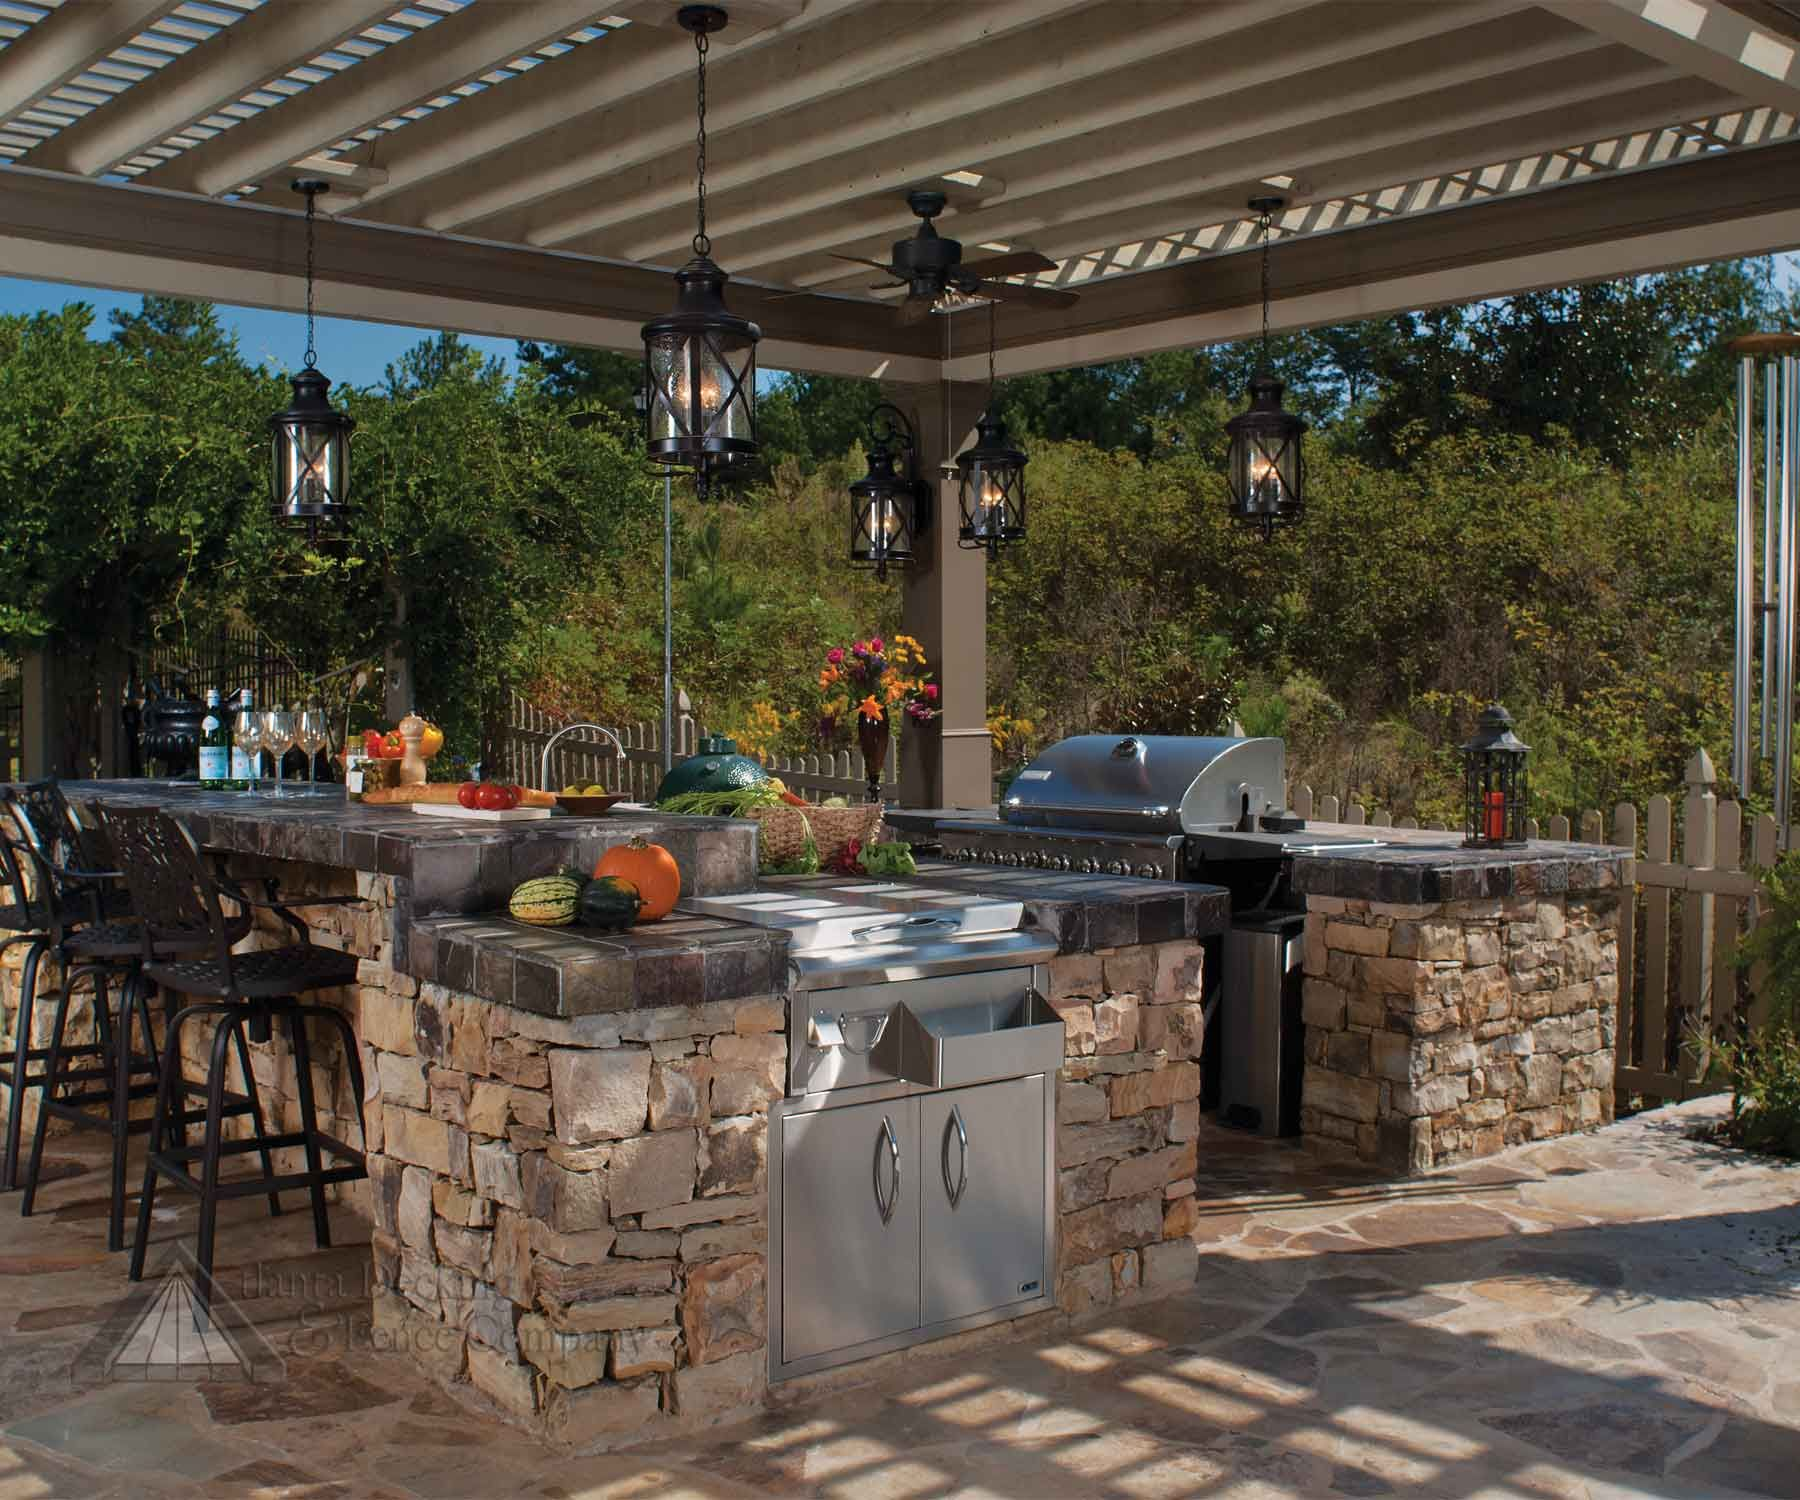 Amazing outdoor kitchens part 3 pergolas kitchens and for Outdoor kitchen pergola ideas